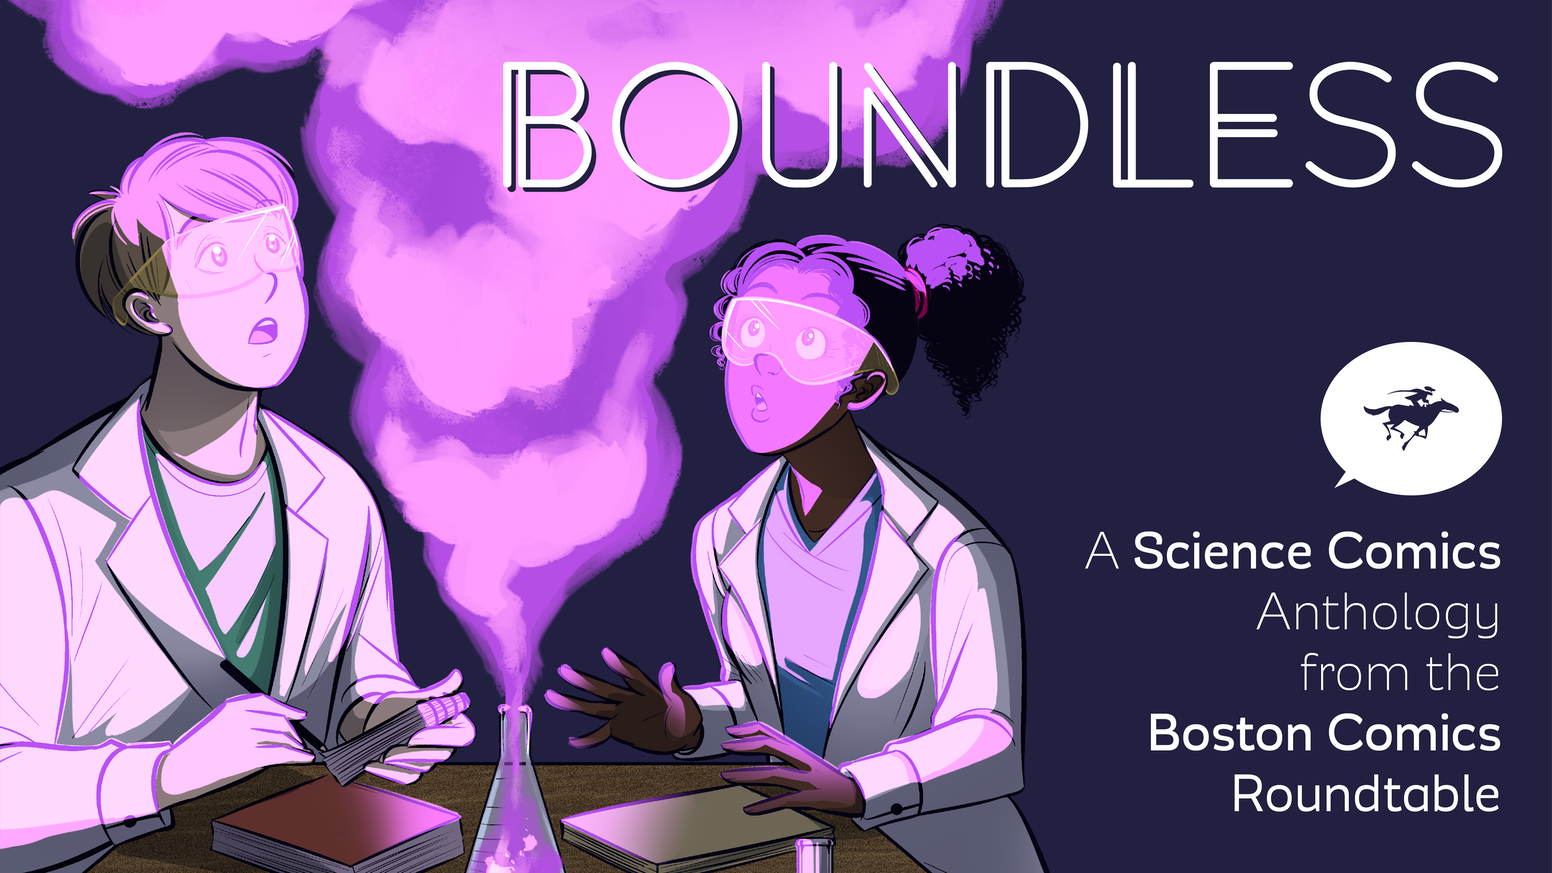 Boundless is our love letter to science: a comics anthology that celebrates and explores stories about science.